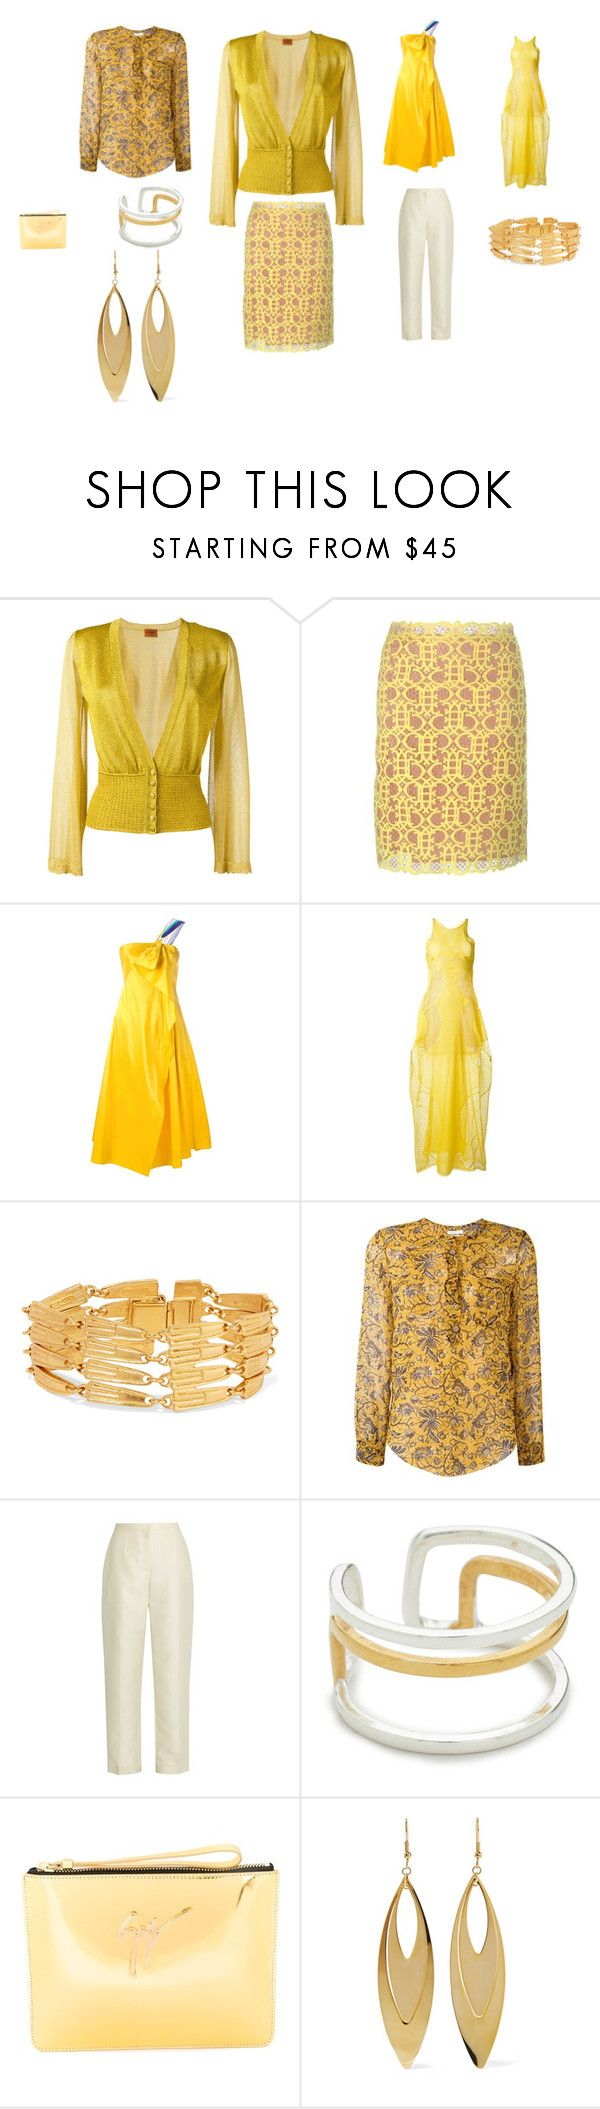 """world of fashion"" by emmamegan-5678 ❤ liked on Polyvore featuring Missoni, Emilio Pucci, Peter Pilotto, STELLA McCARTNEY, Ben-Amun, Étoile Isabel Marant, Brock Collection, Maya Magal, Giuseppe Zanotti and Kenneth Jay Lane"